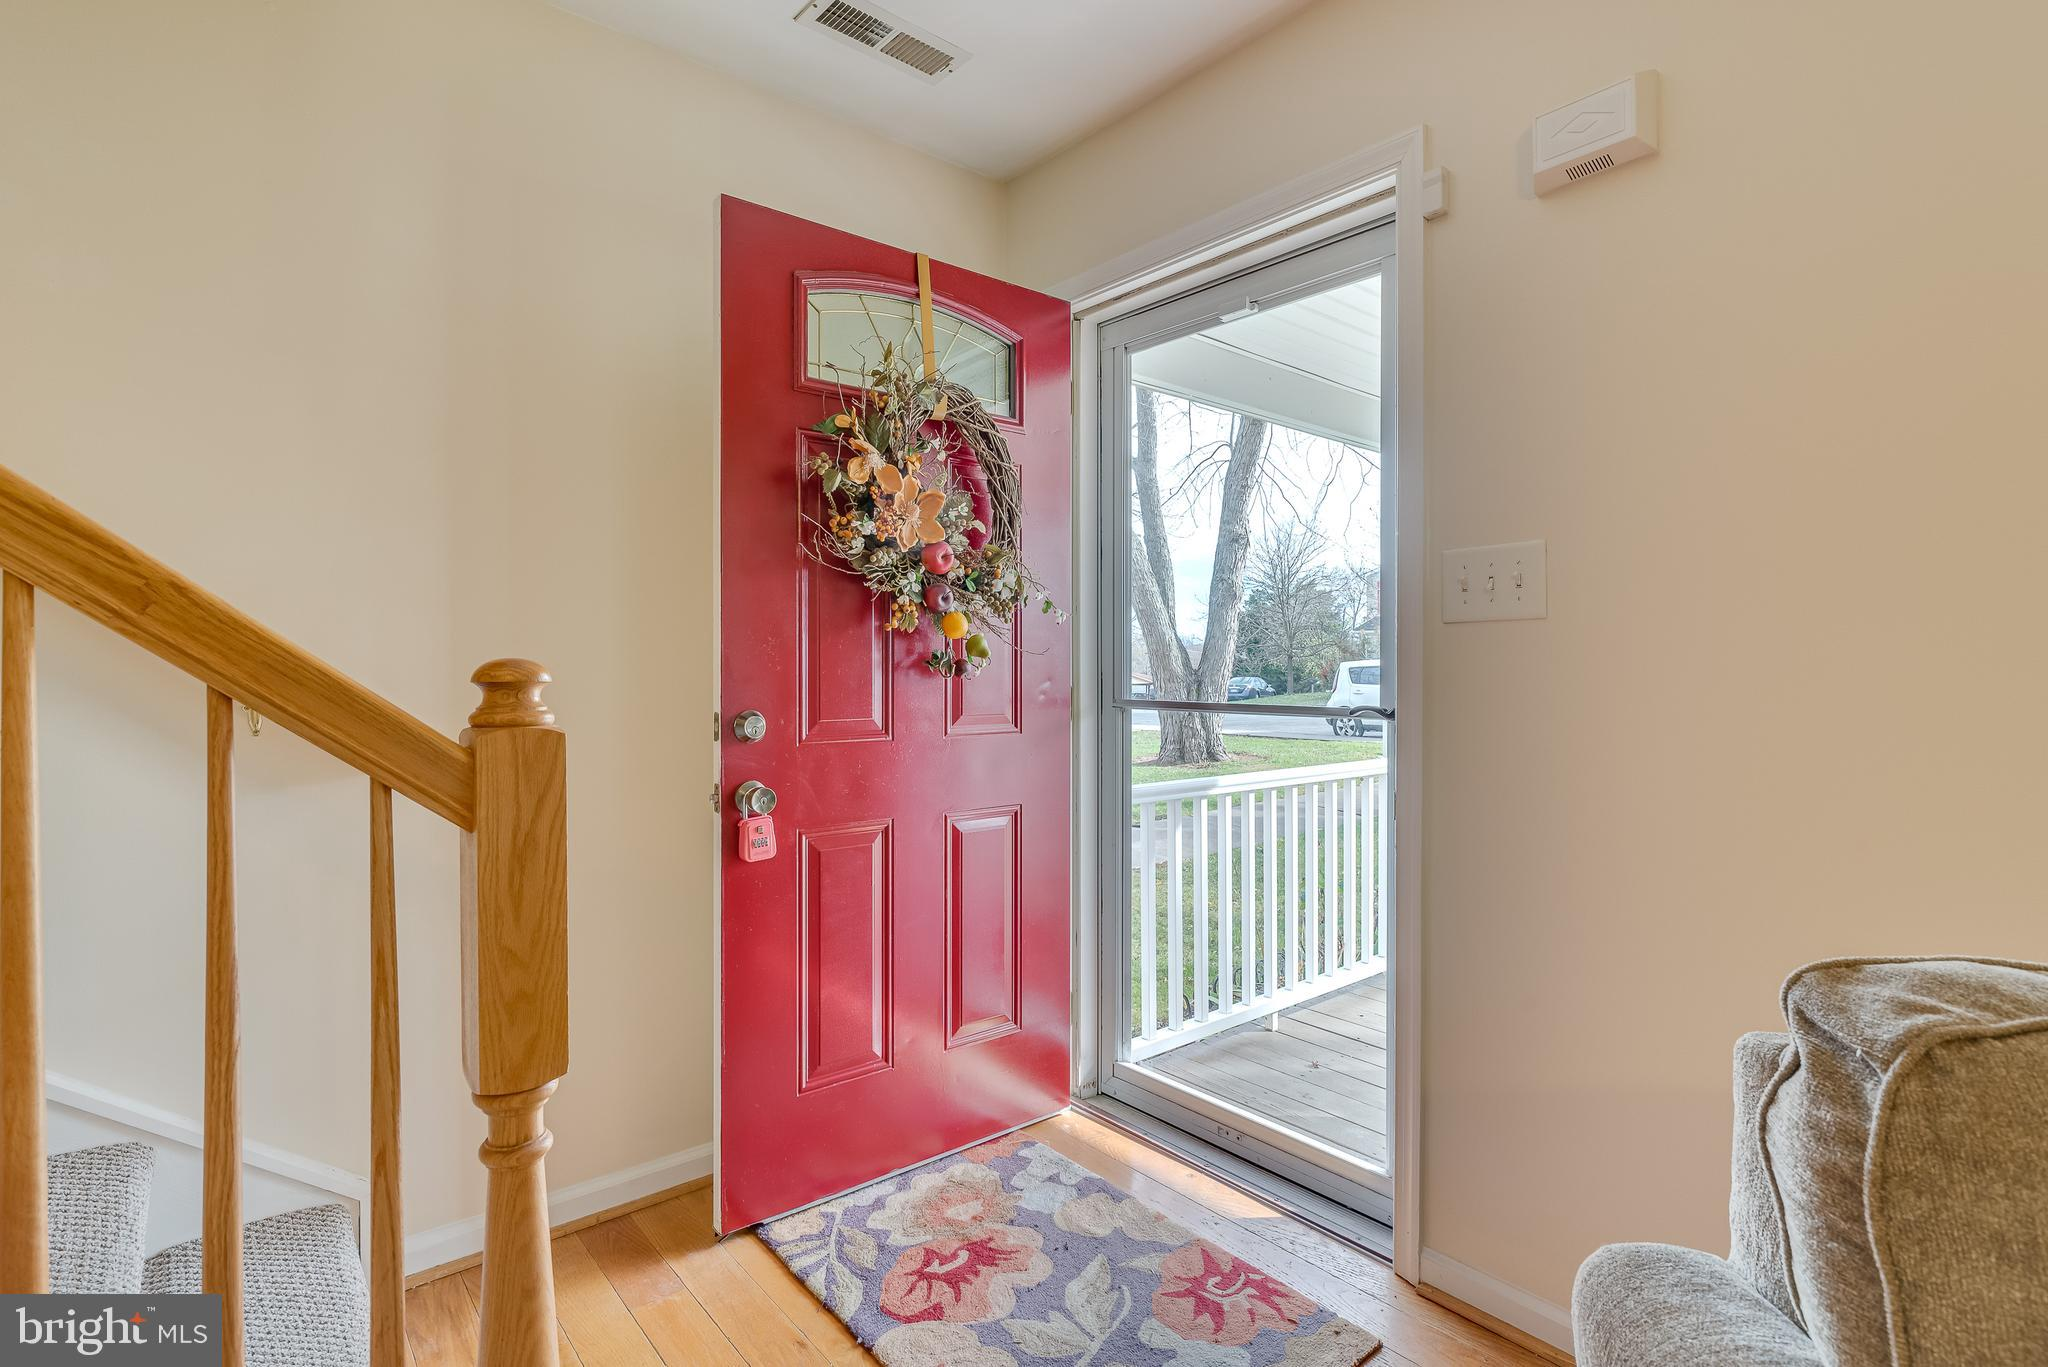 Cute Duplex in the heart of Charles Town with easy access to all main roads. Home has two Main suite